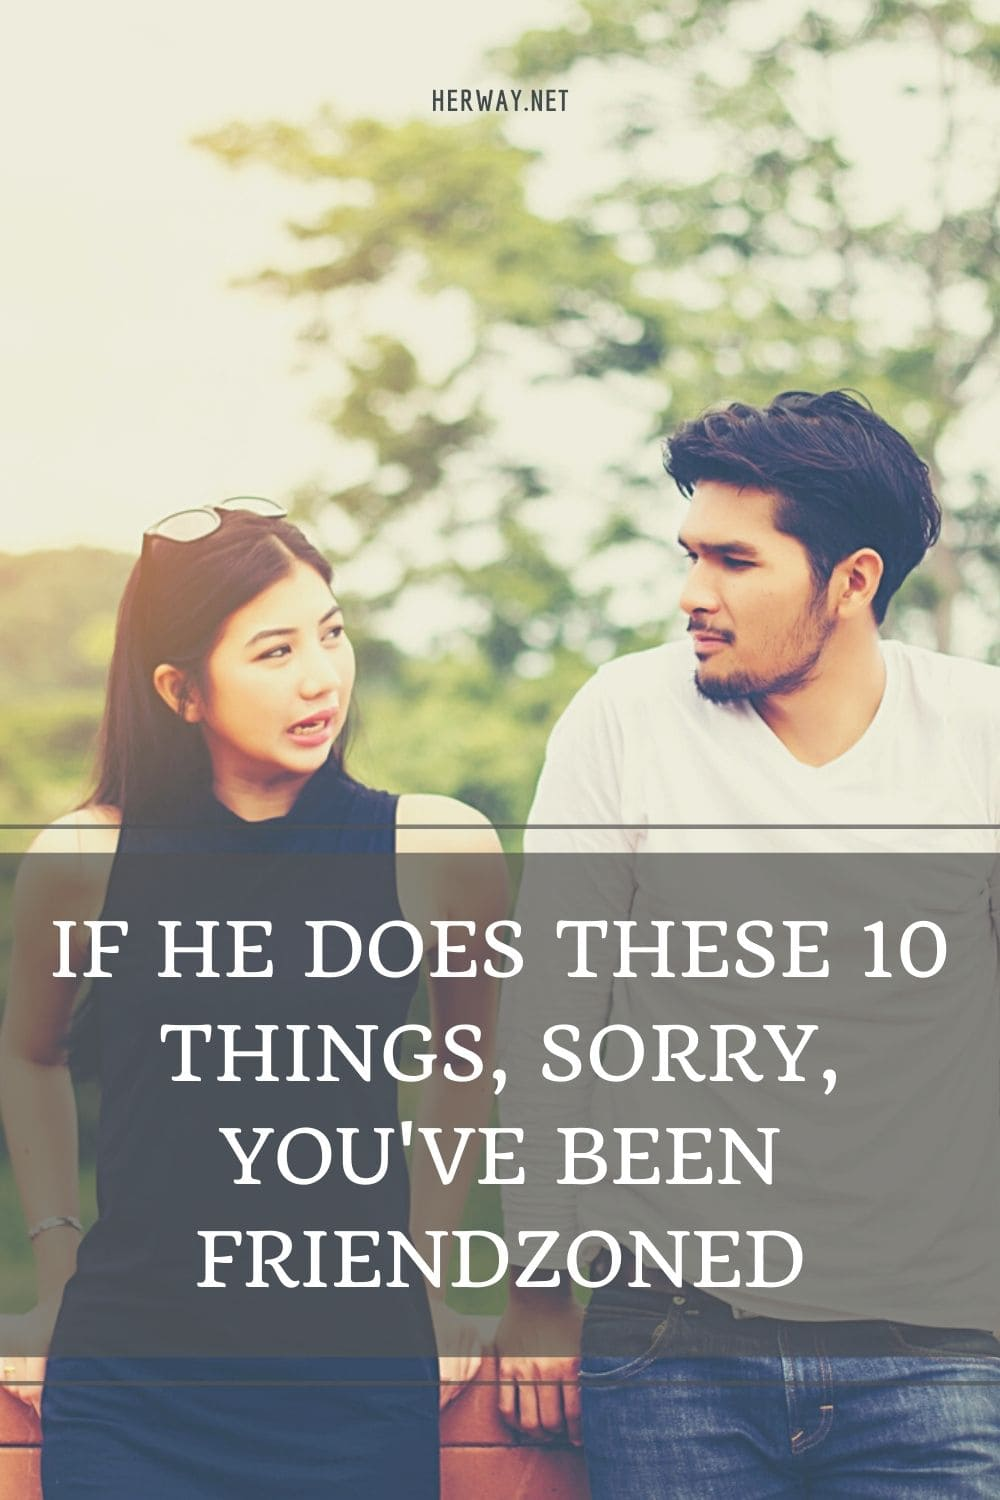 If He Does These 10 Things, Sorry, You've Been Friendzoned